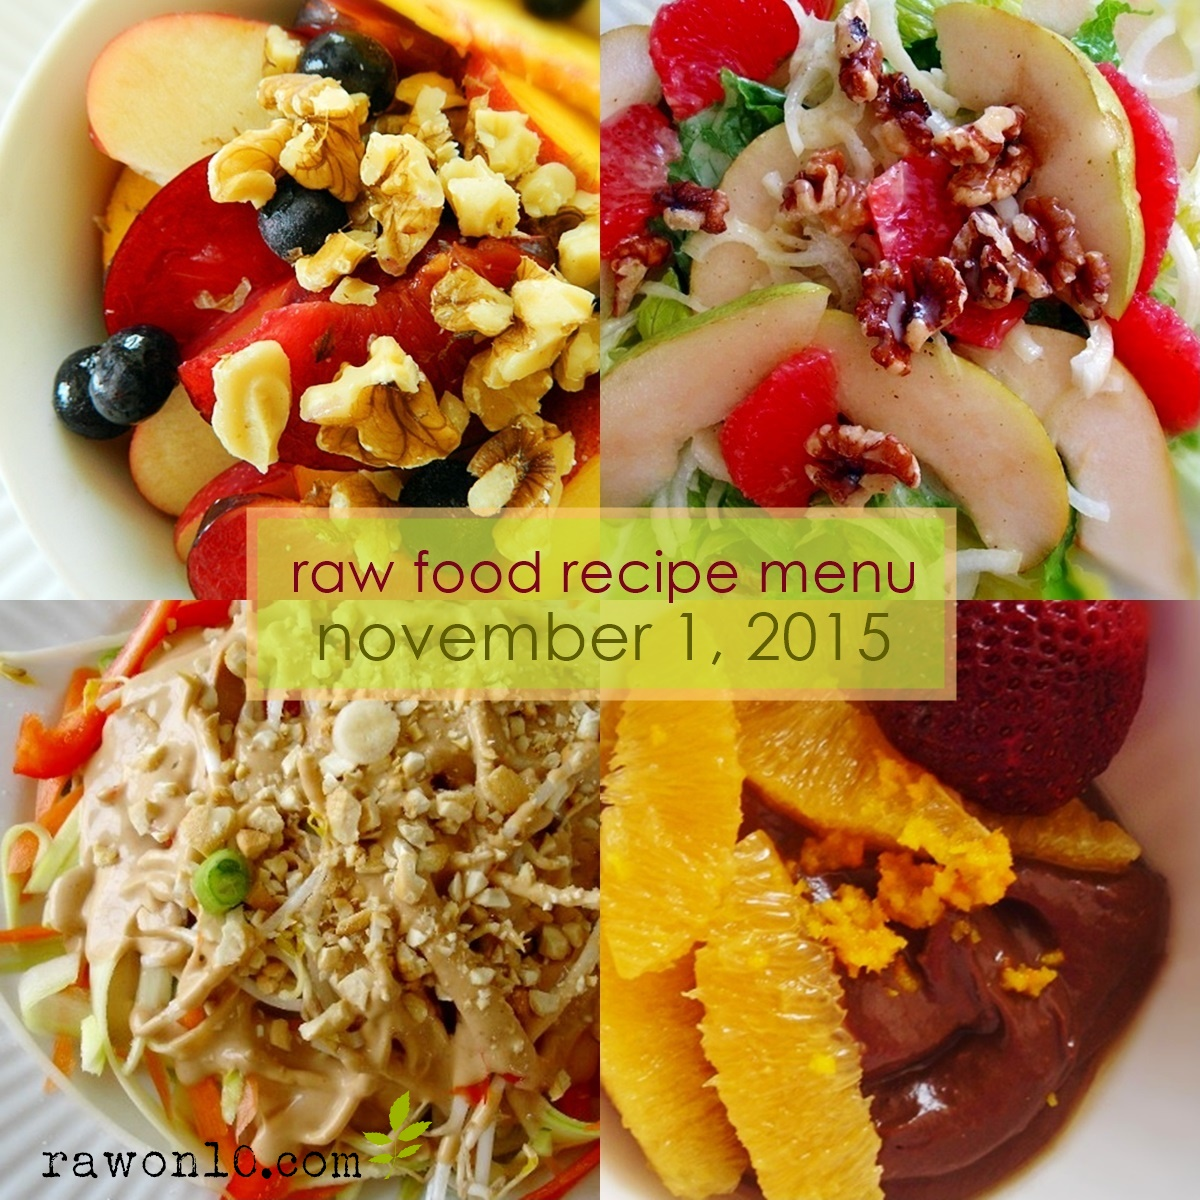 Raw on 10 a day or less raw food recipe menu november 1 2015 raw food recipe menu november 1 2015 forumfinder Images